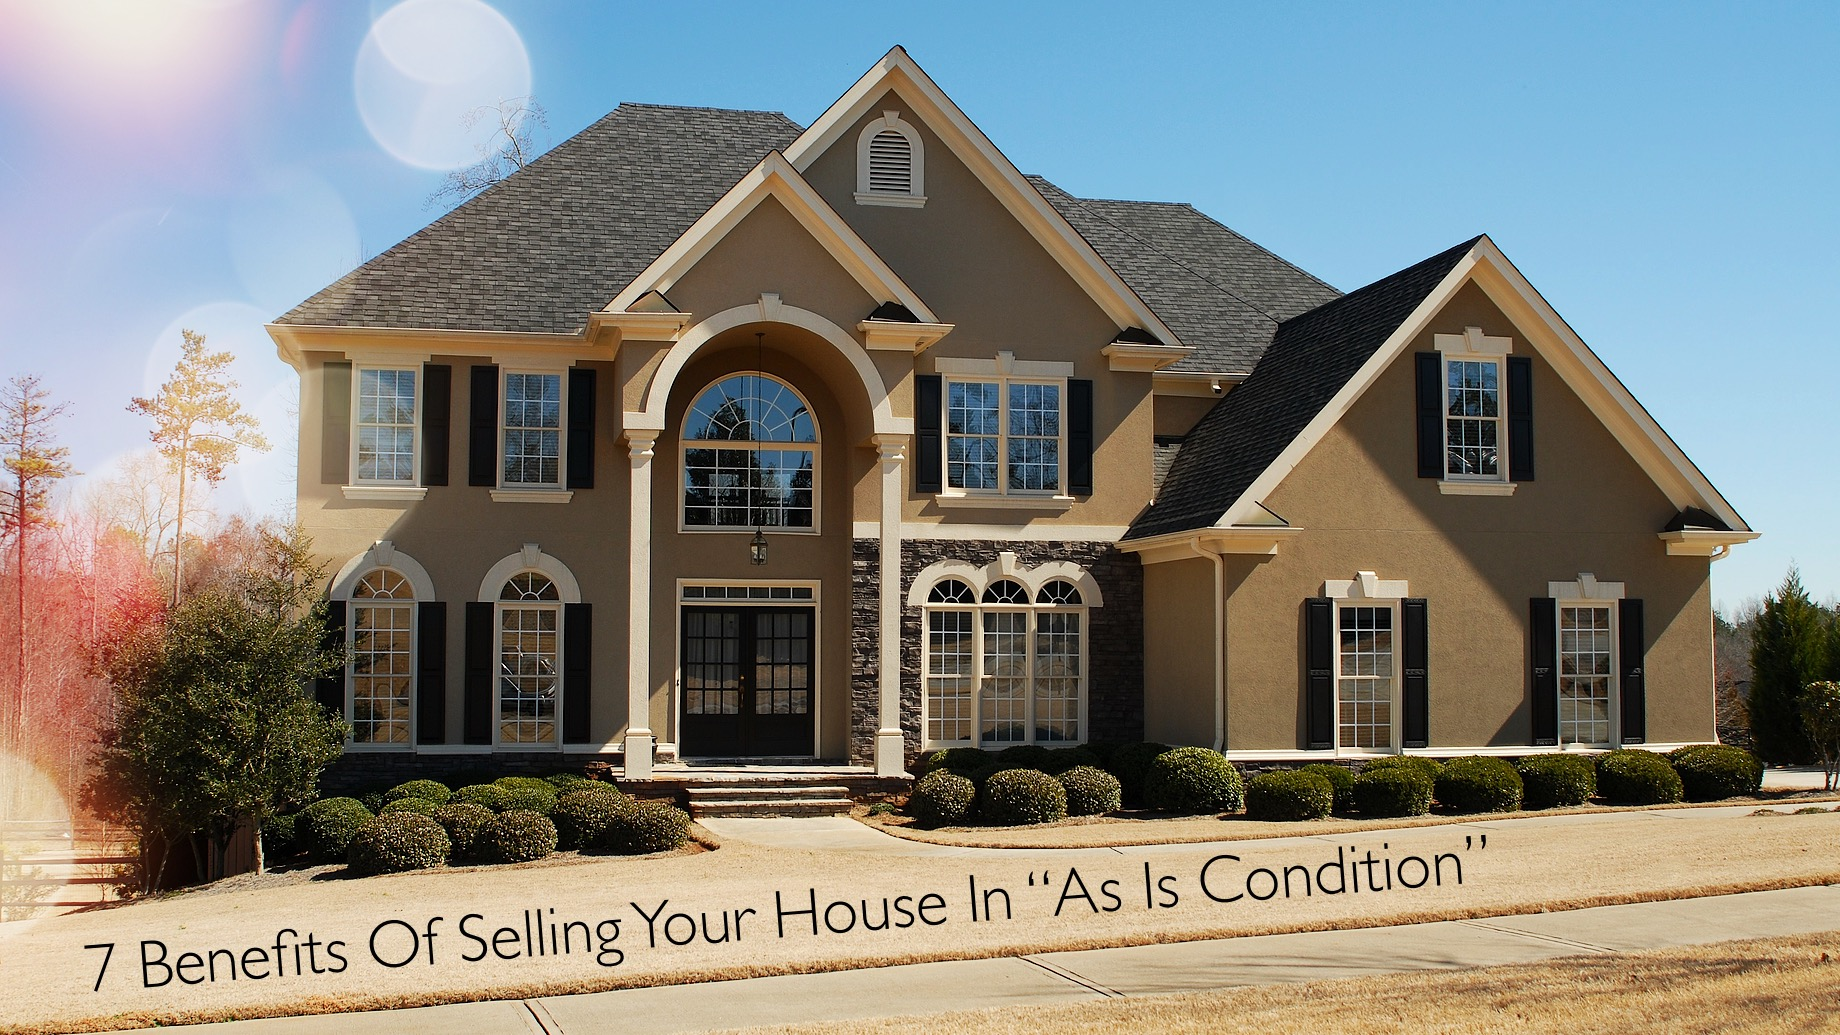 7 Benefits Of Selling Your House In As Is Condition